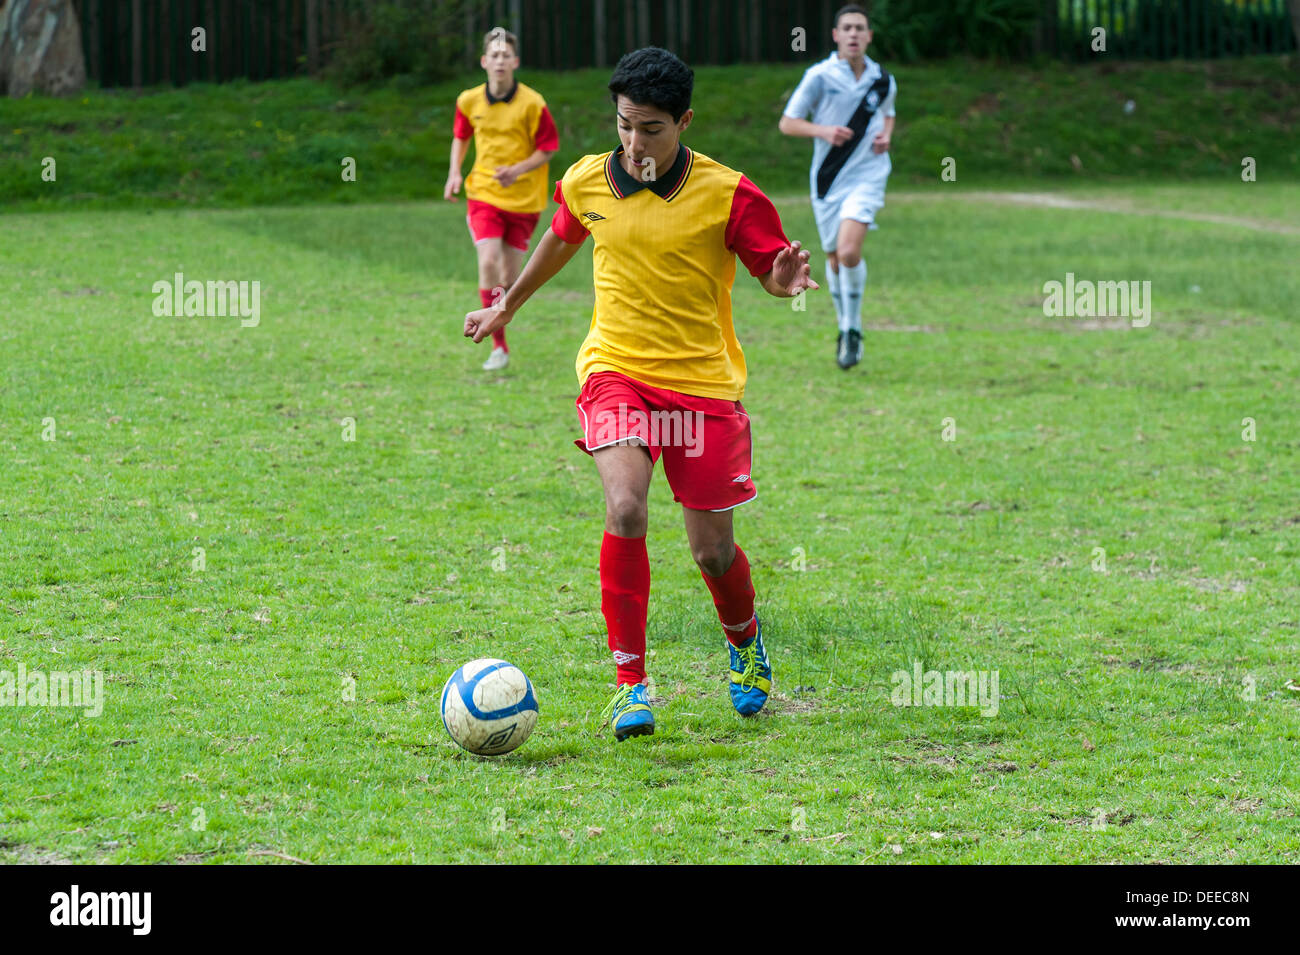 Junior football player running with the ball, Cape Town, South Africa - Stock Image